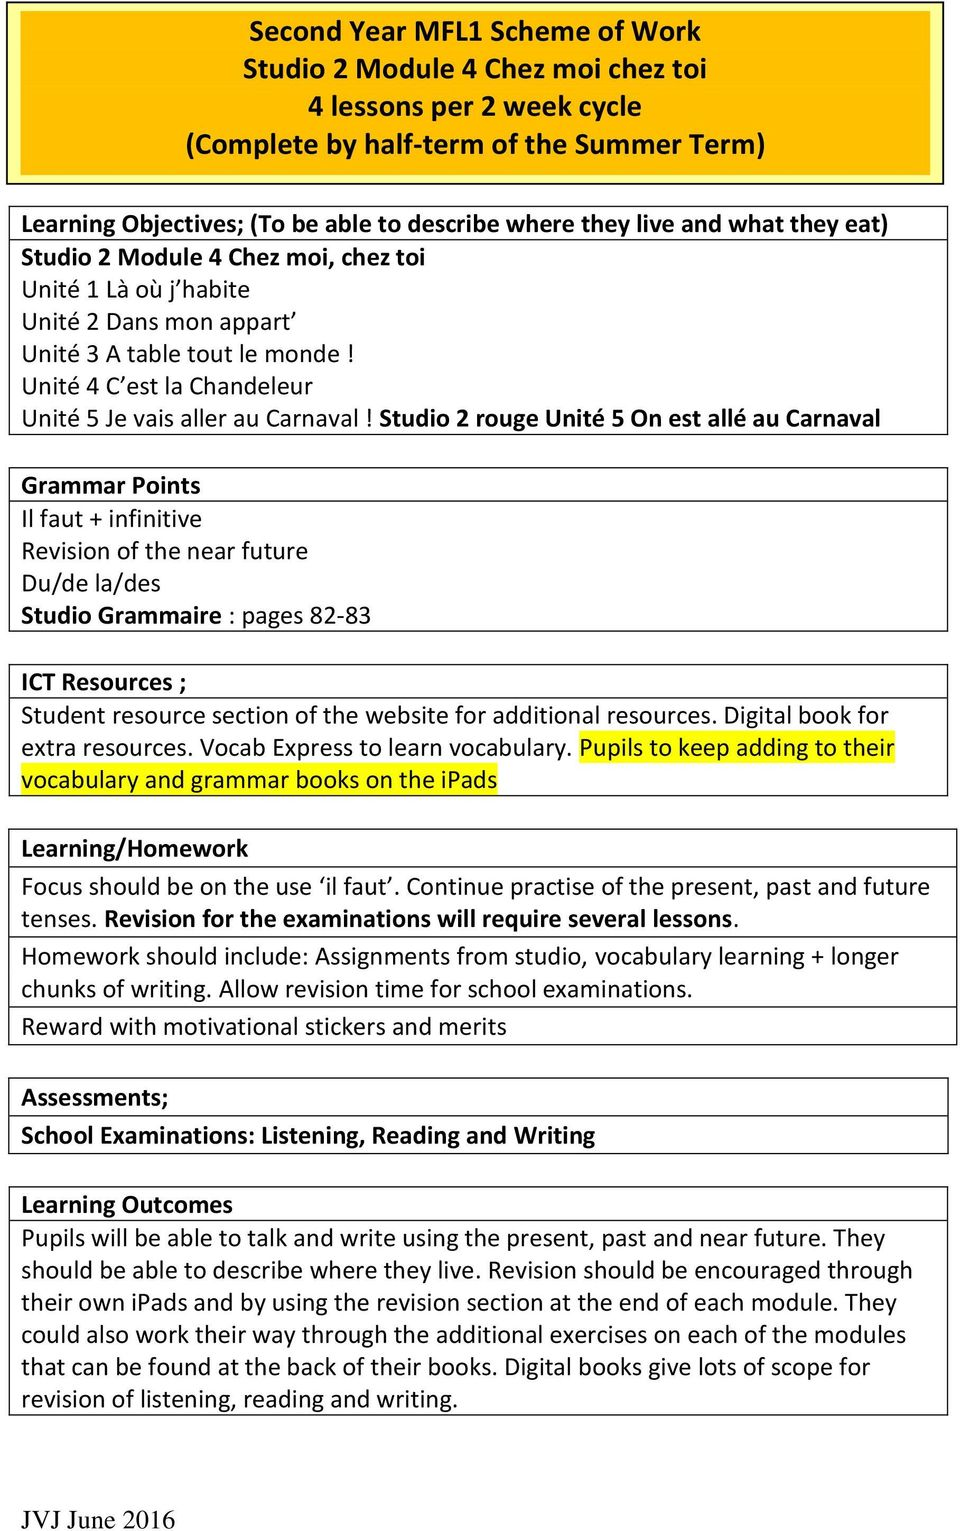 Studio 2 rouge Unité 5 On est allé au Carnaval Il faut + infinitive Revision of the near future Du/de la/des Studio Grammaire : pages 82-83 ICT Resources ; Focus should be on the use il faut.